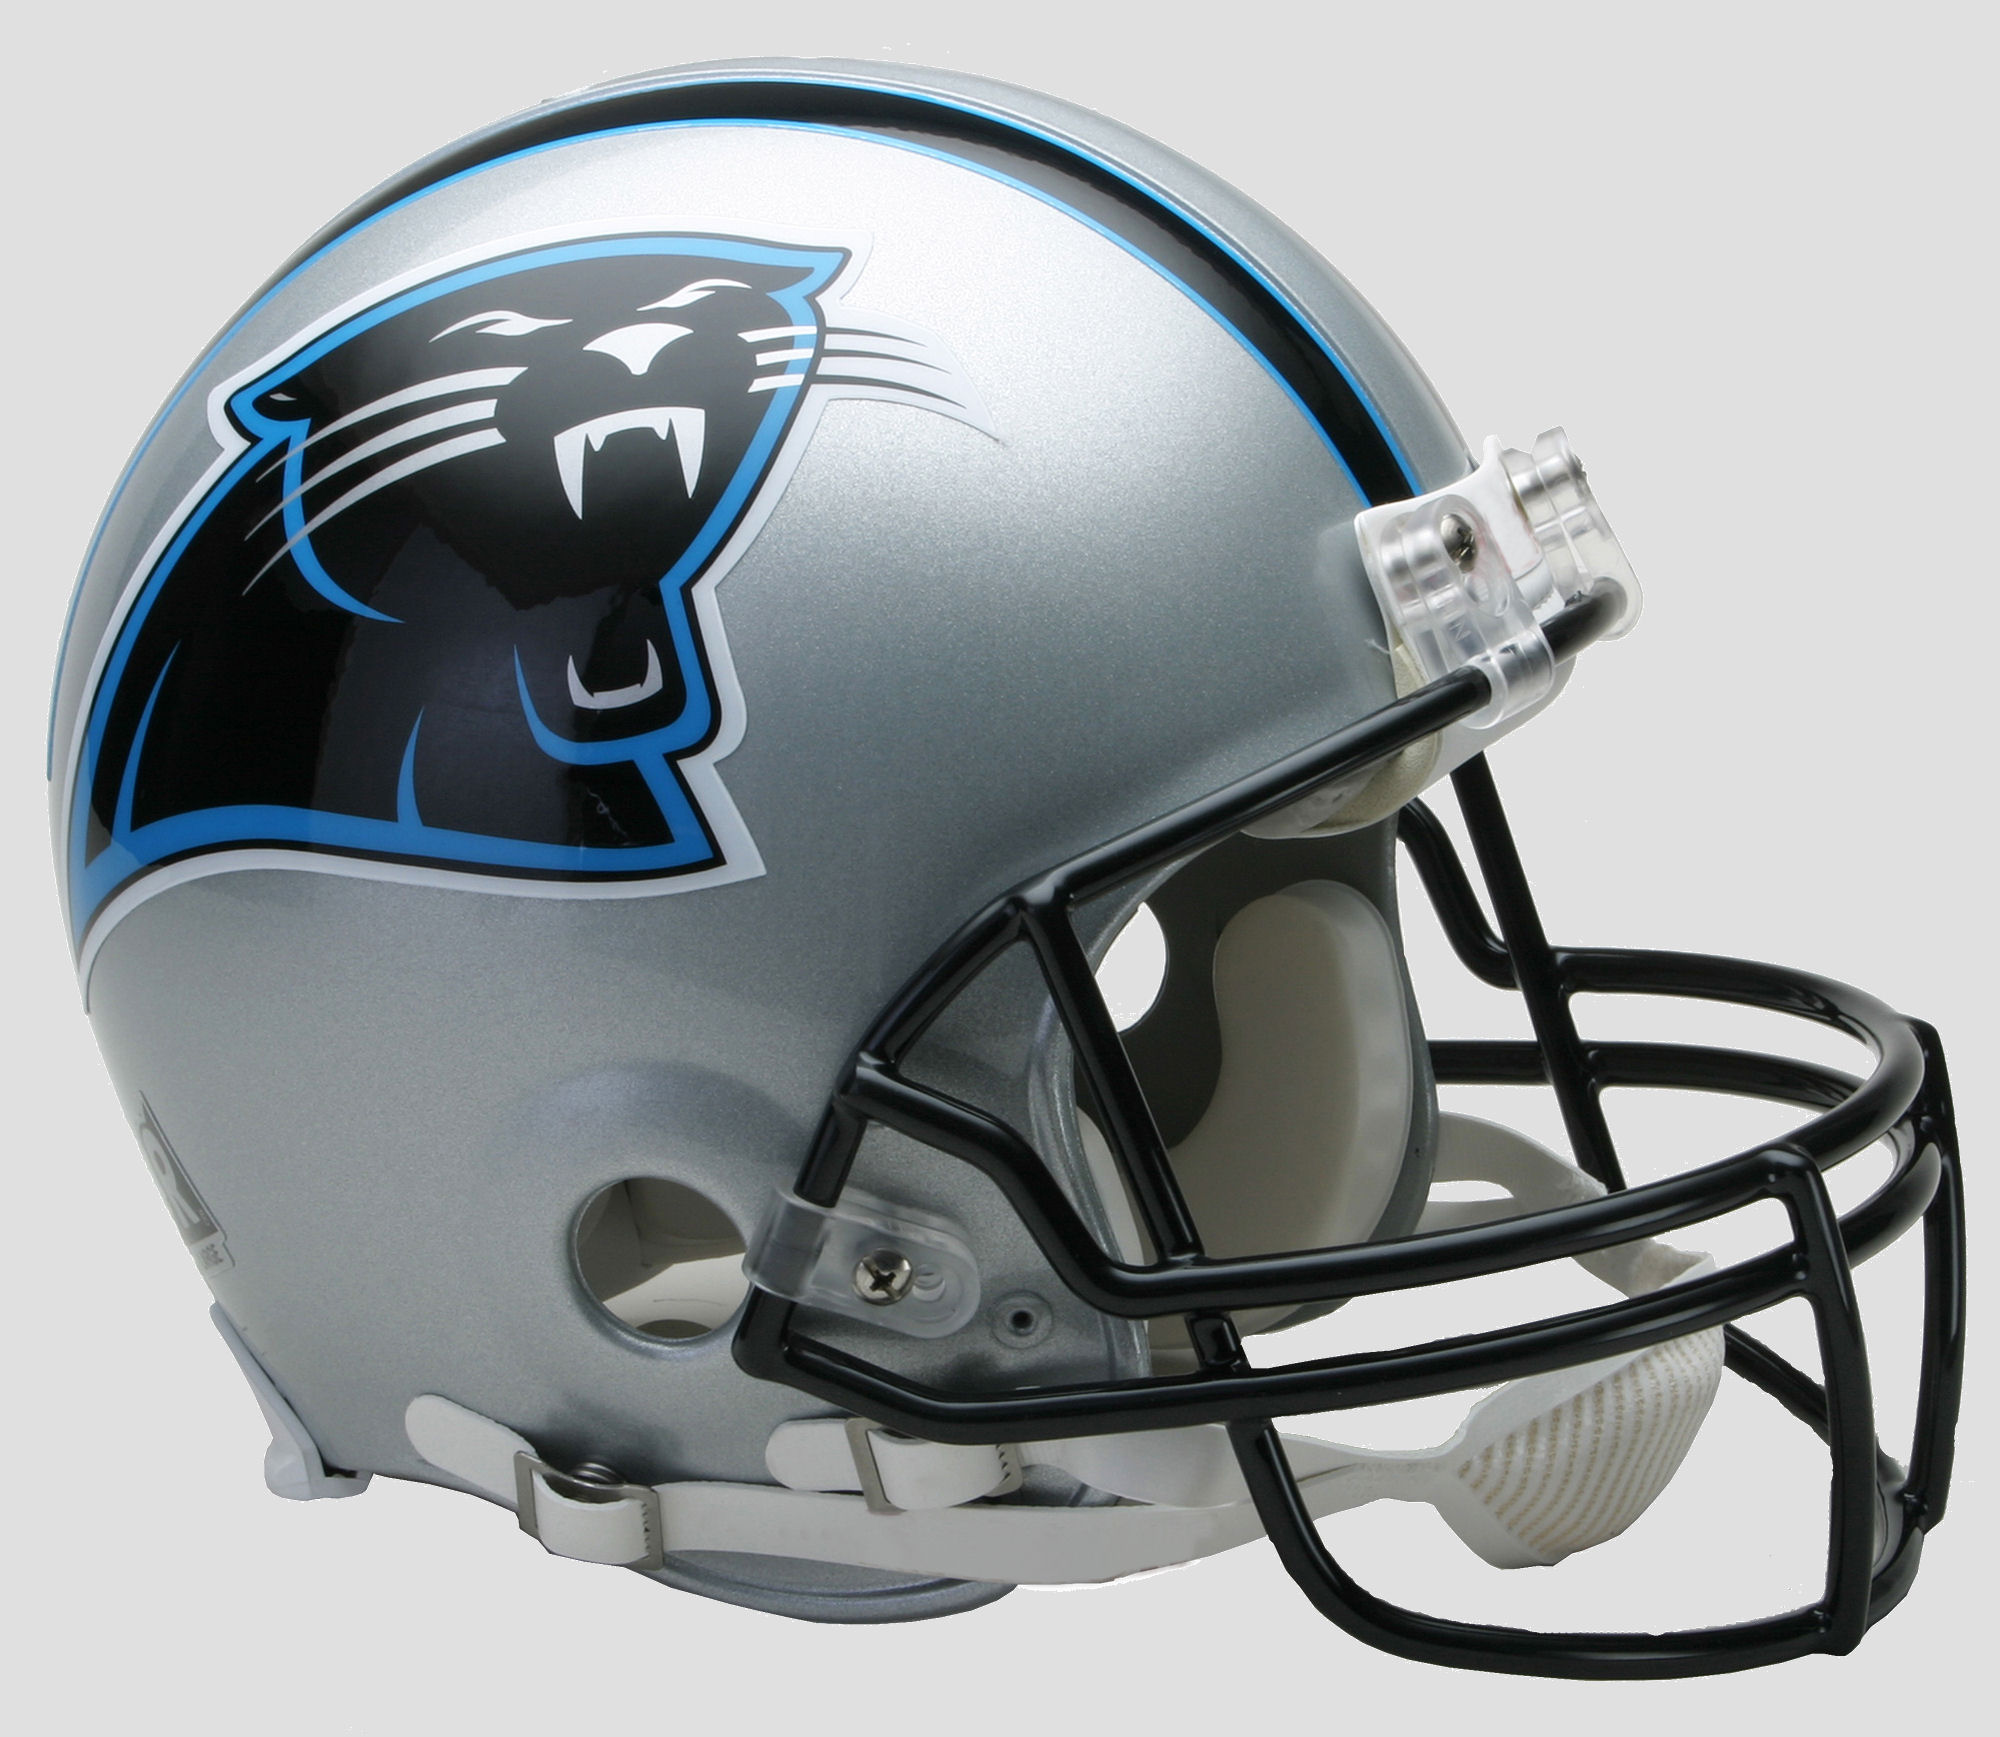 Carolina Panthers 1995 to 2011 Football Helmet